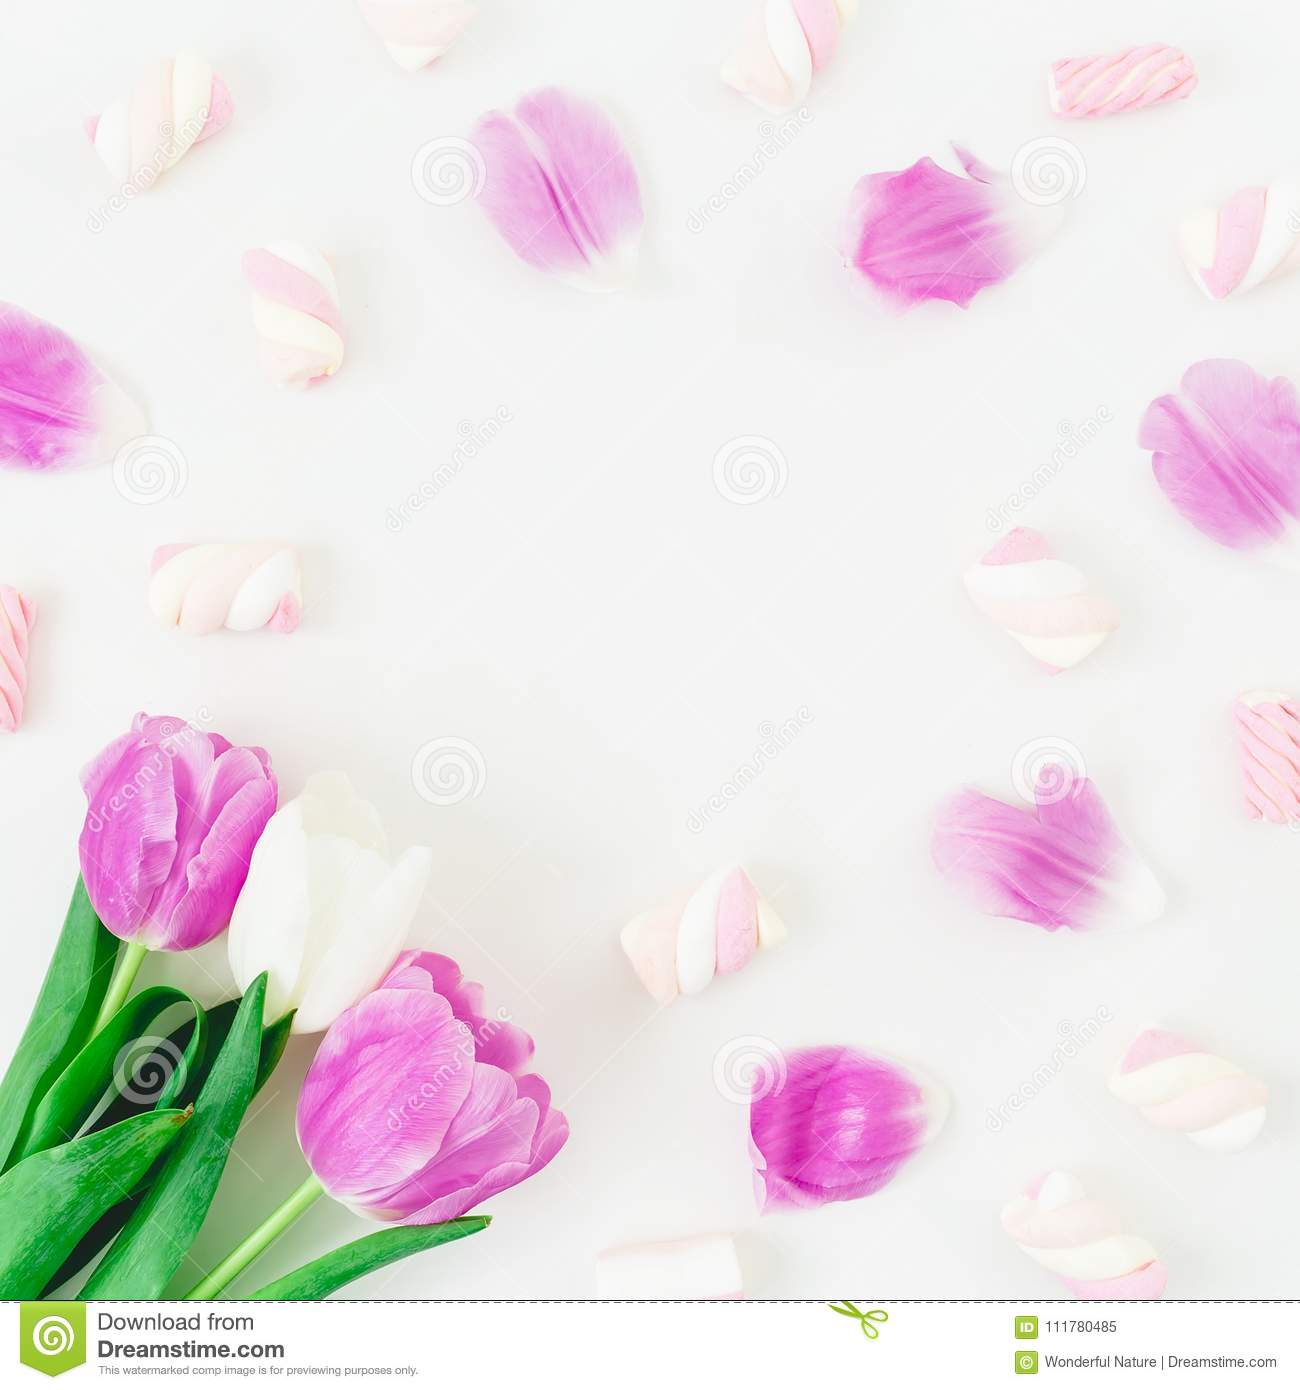 Floral round frame with pink tulips with petals and marshmallow on white background. Flat lay, Top view.